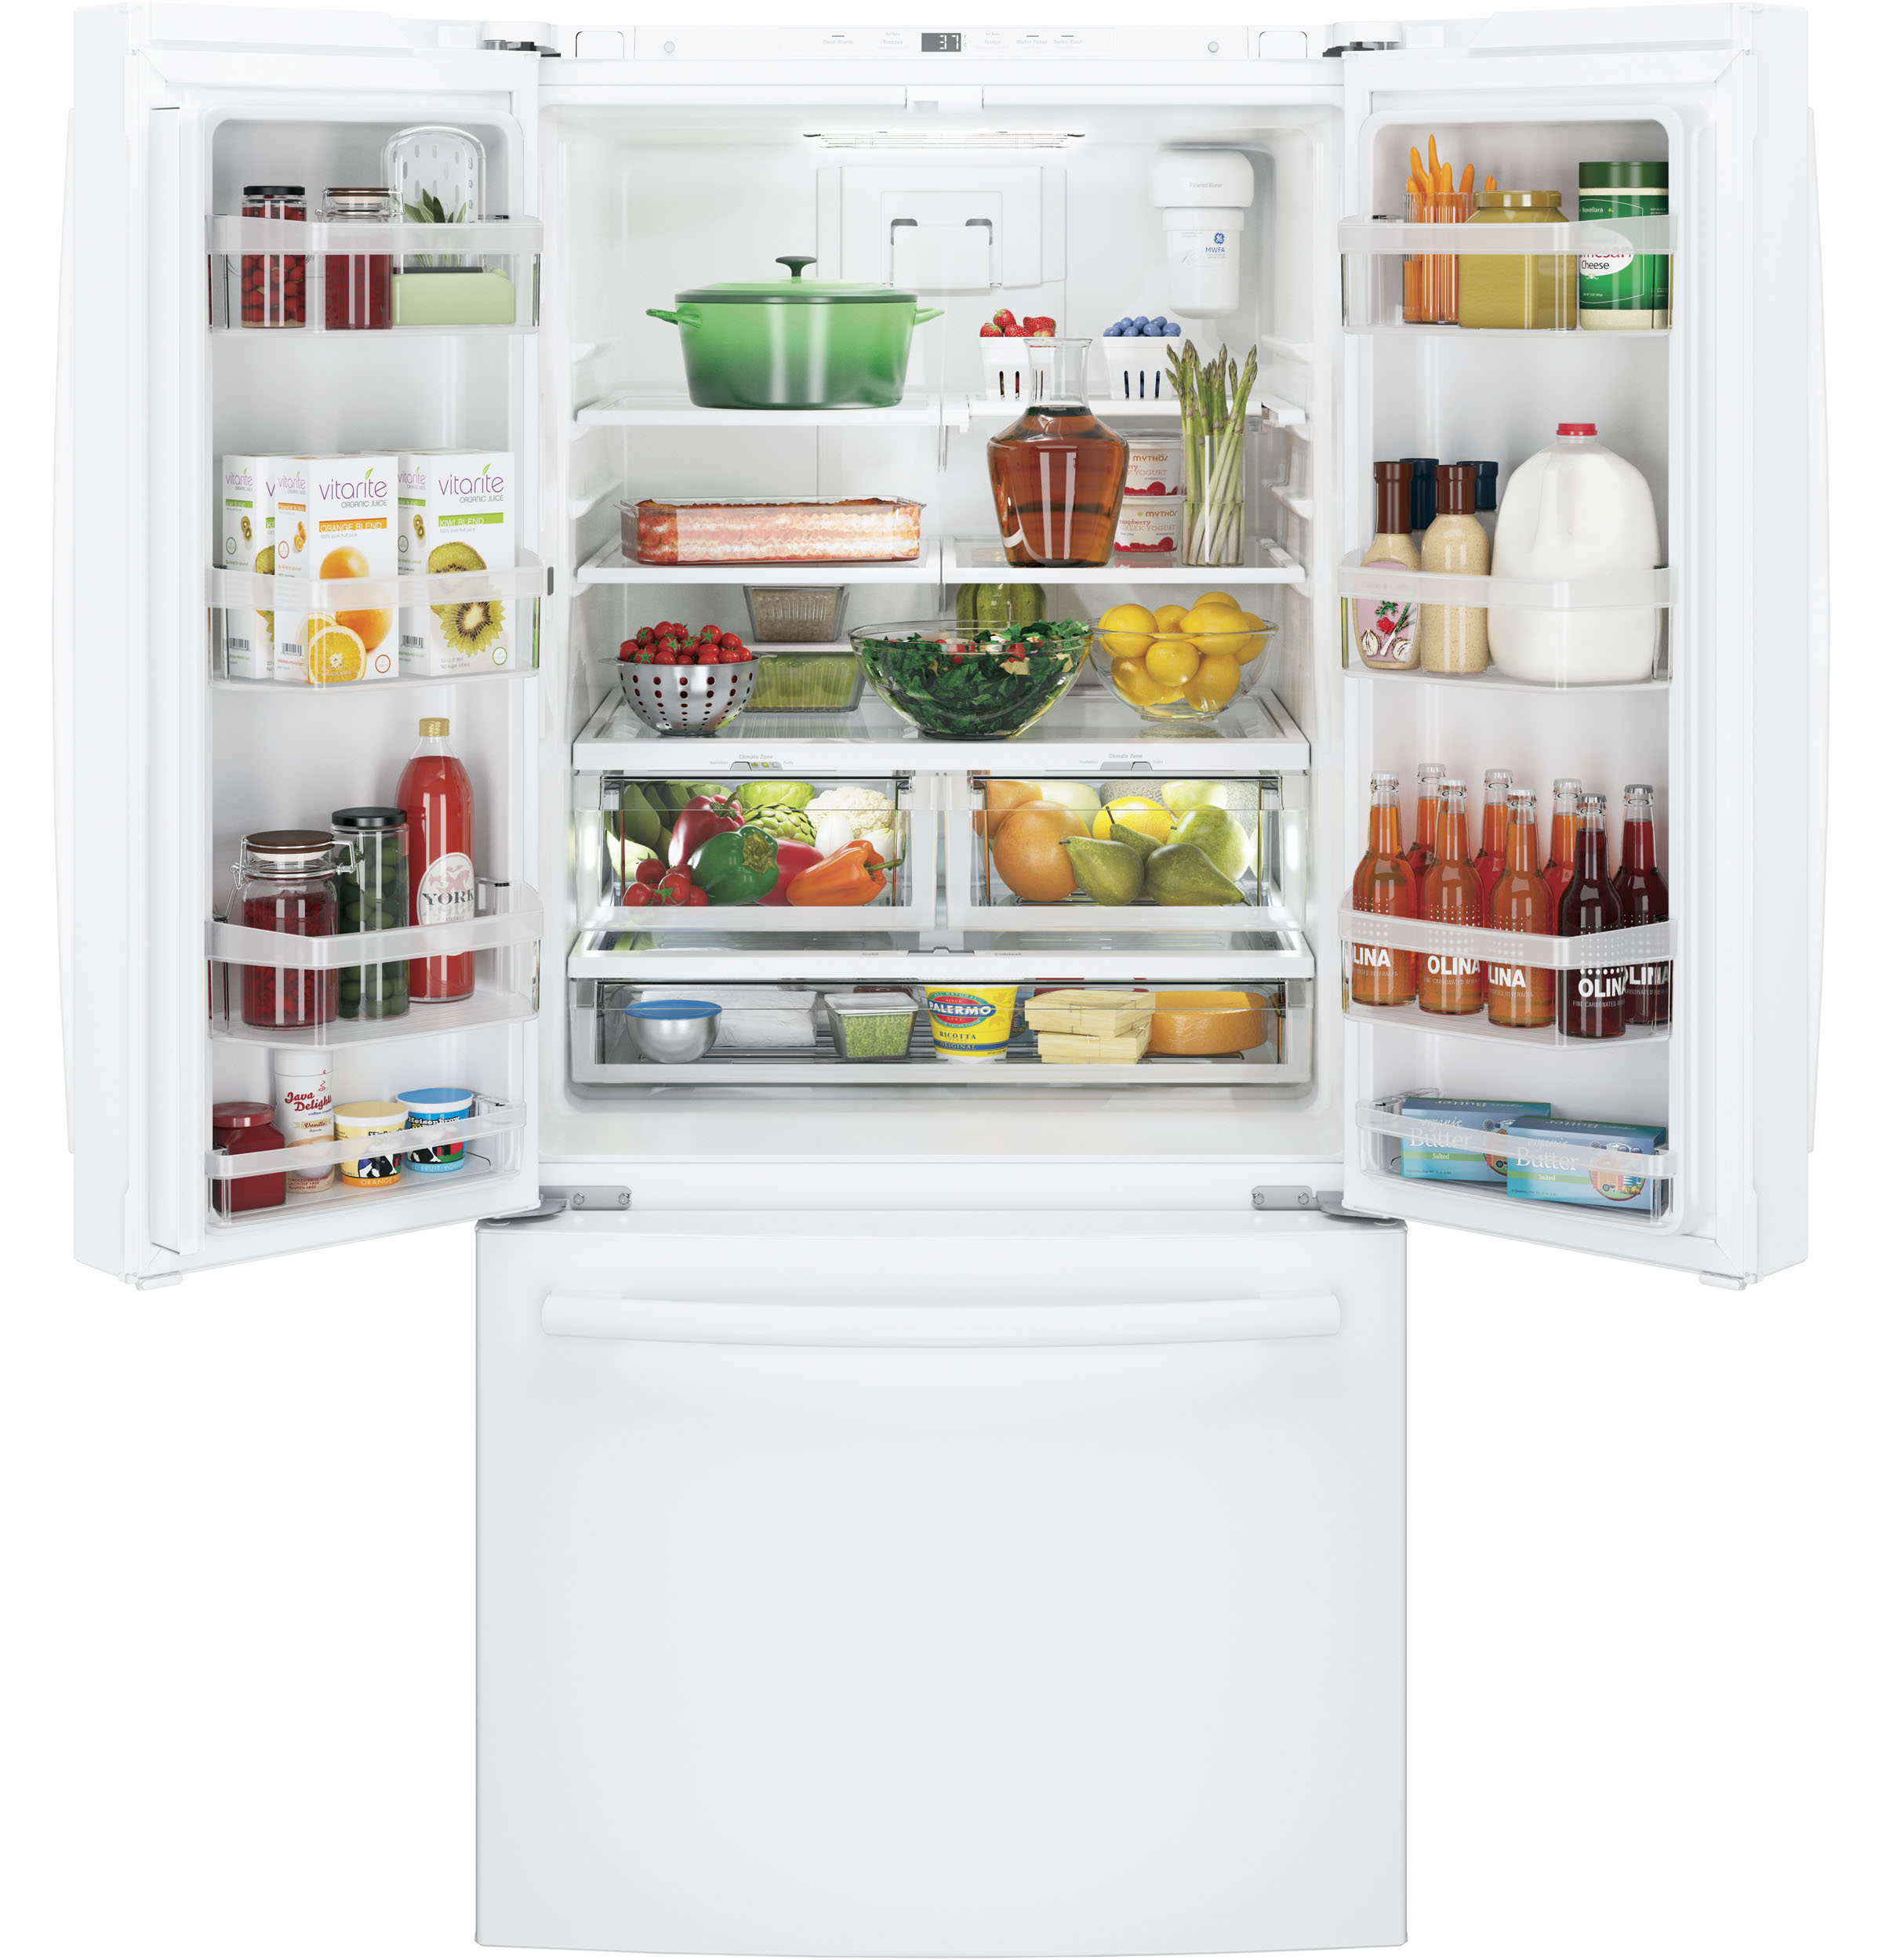 GE Appliances GNE25JGKWW 24.8 cu. ft. French Door Refrigerator - White